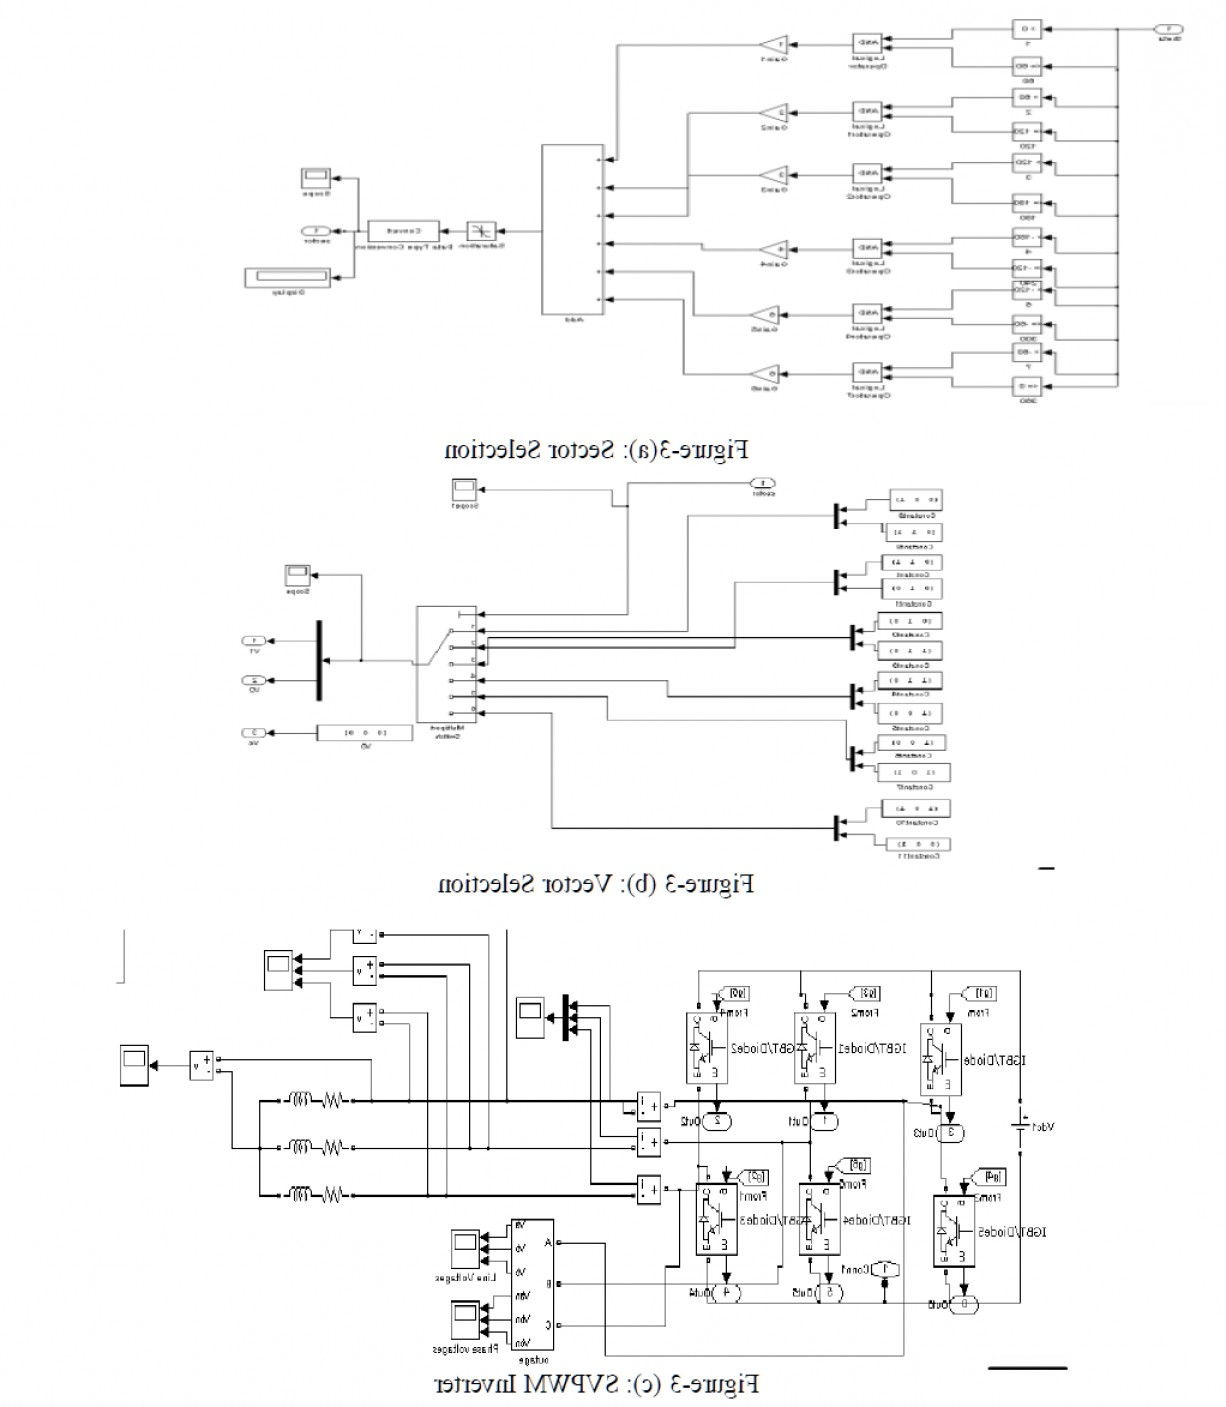 Space Vector PWM: Performance Comparison Between Pwmbased Inverter And Svpwm Based Inverter